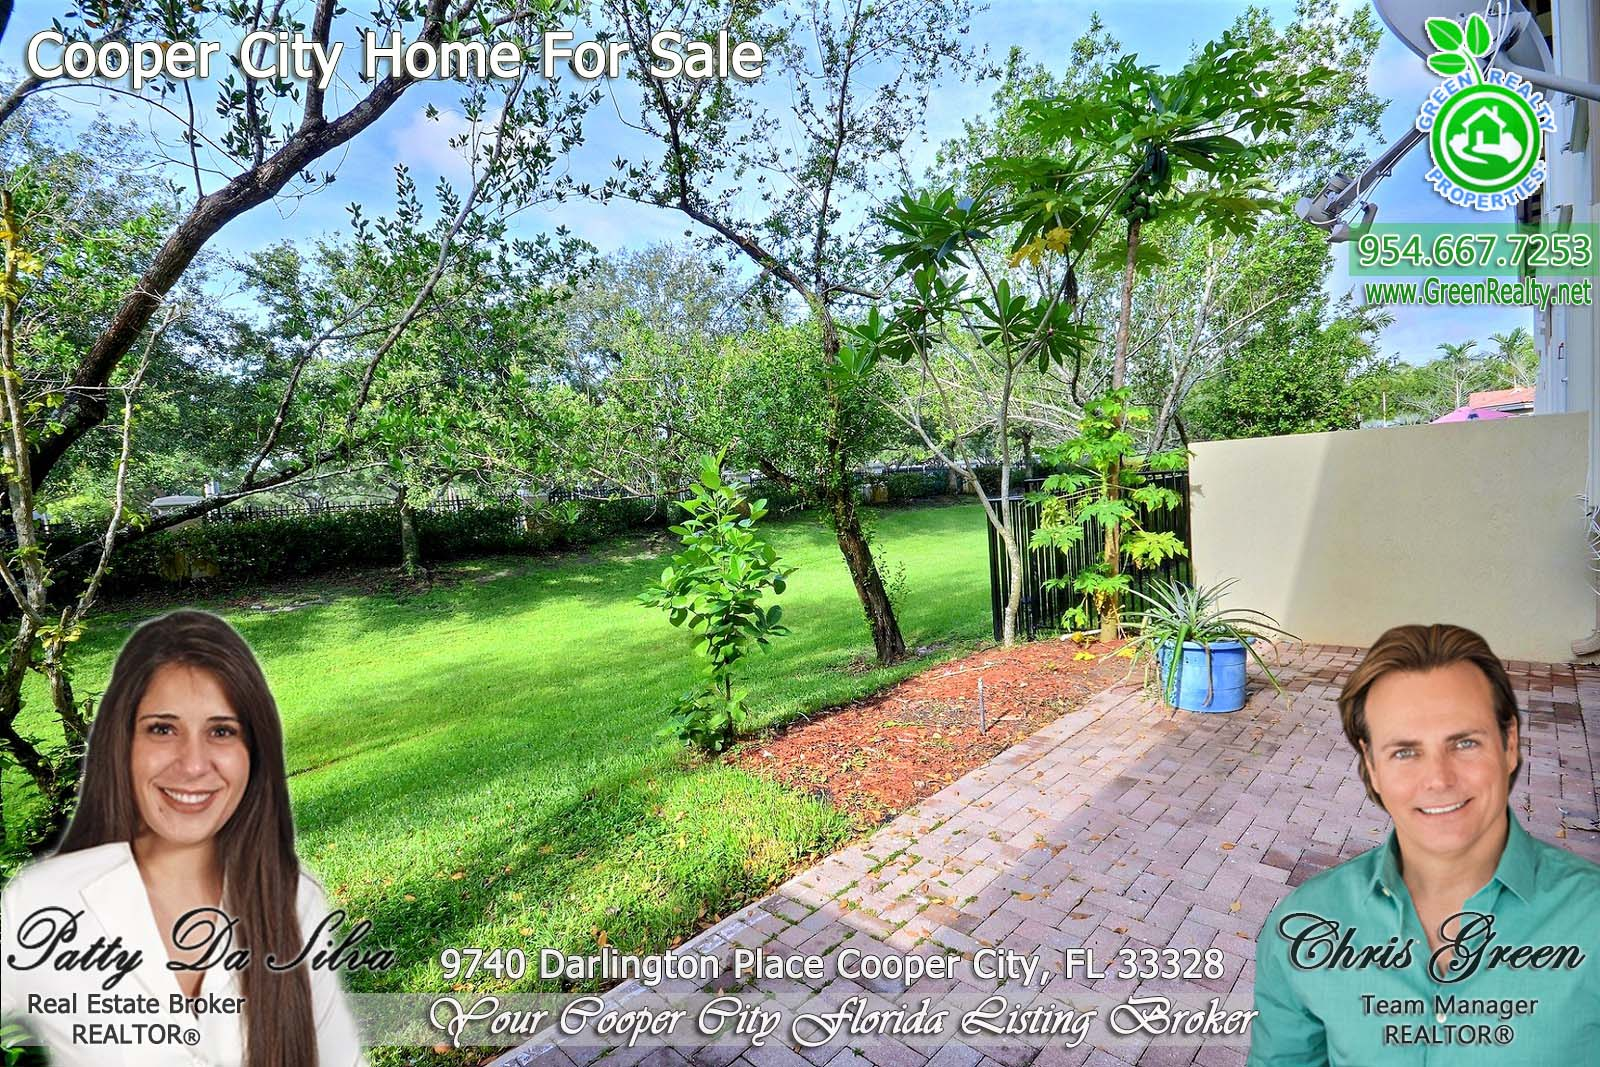 25 Darlington Park Cooper City Homes For Sale (2)